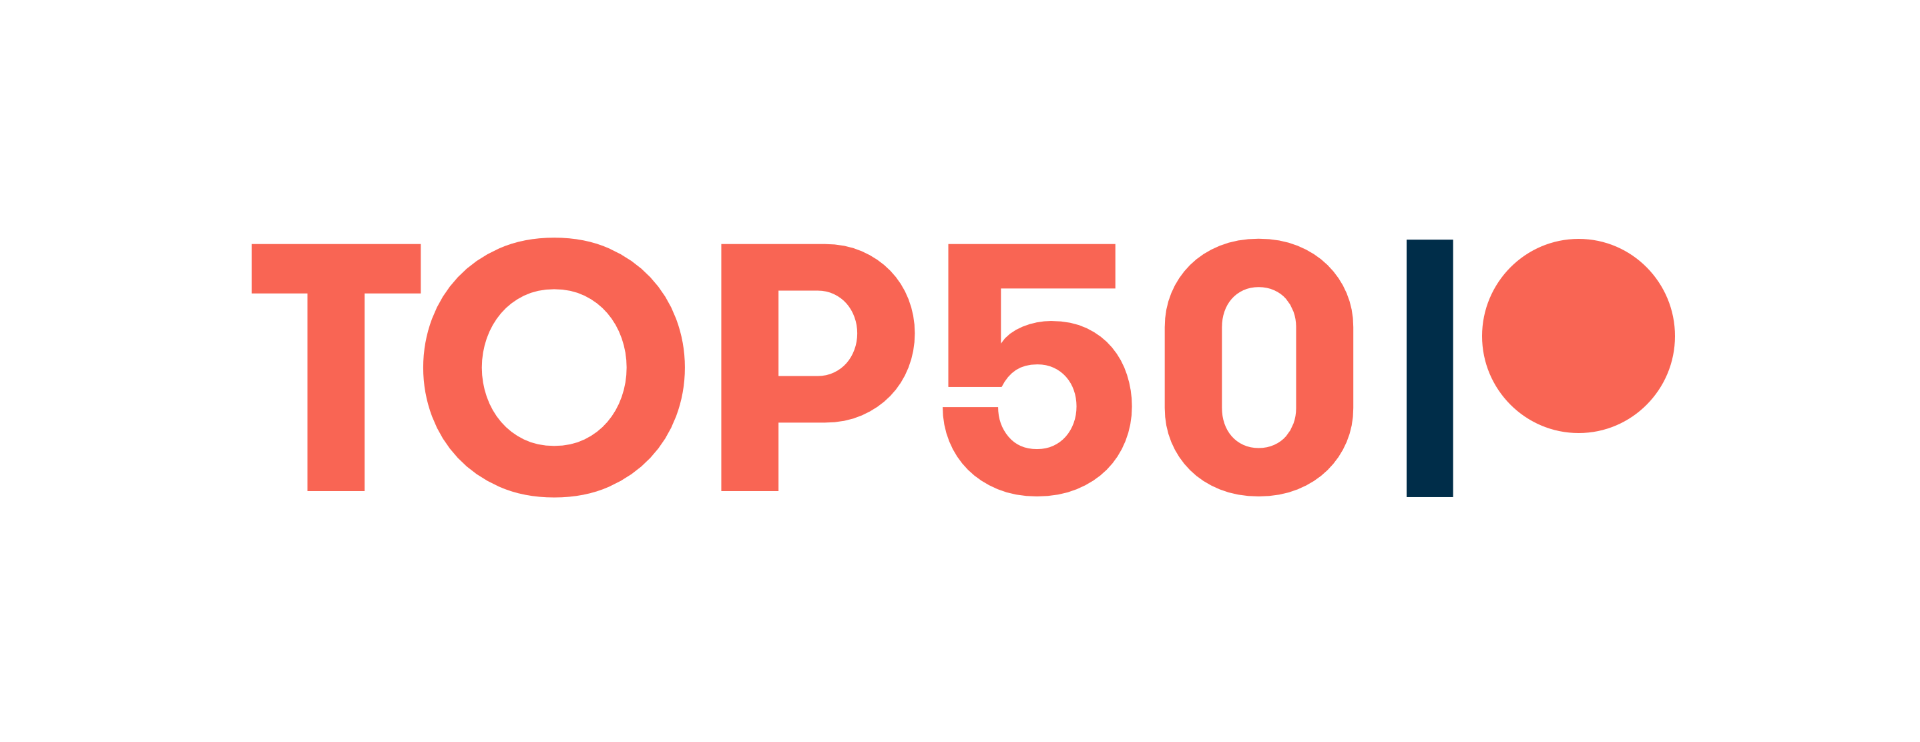 Top 50 Patreon